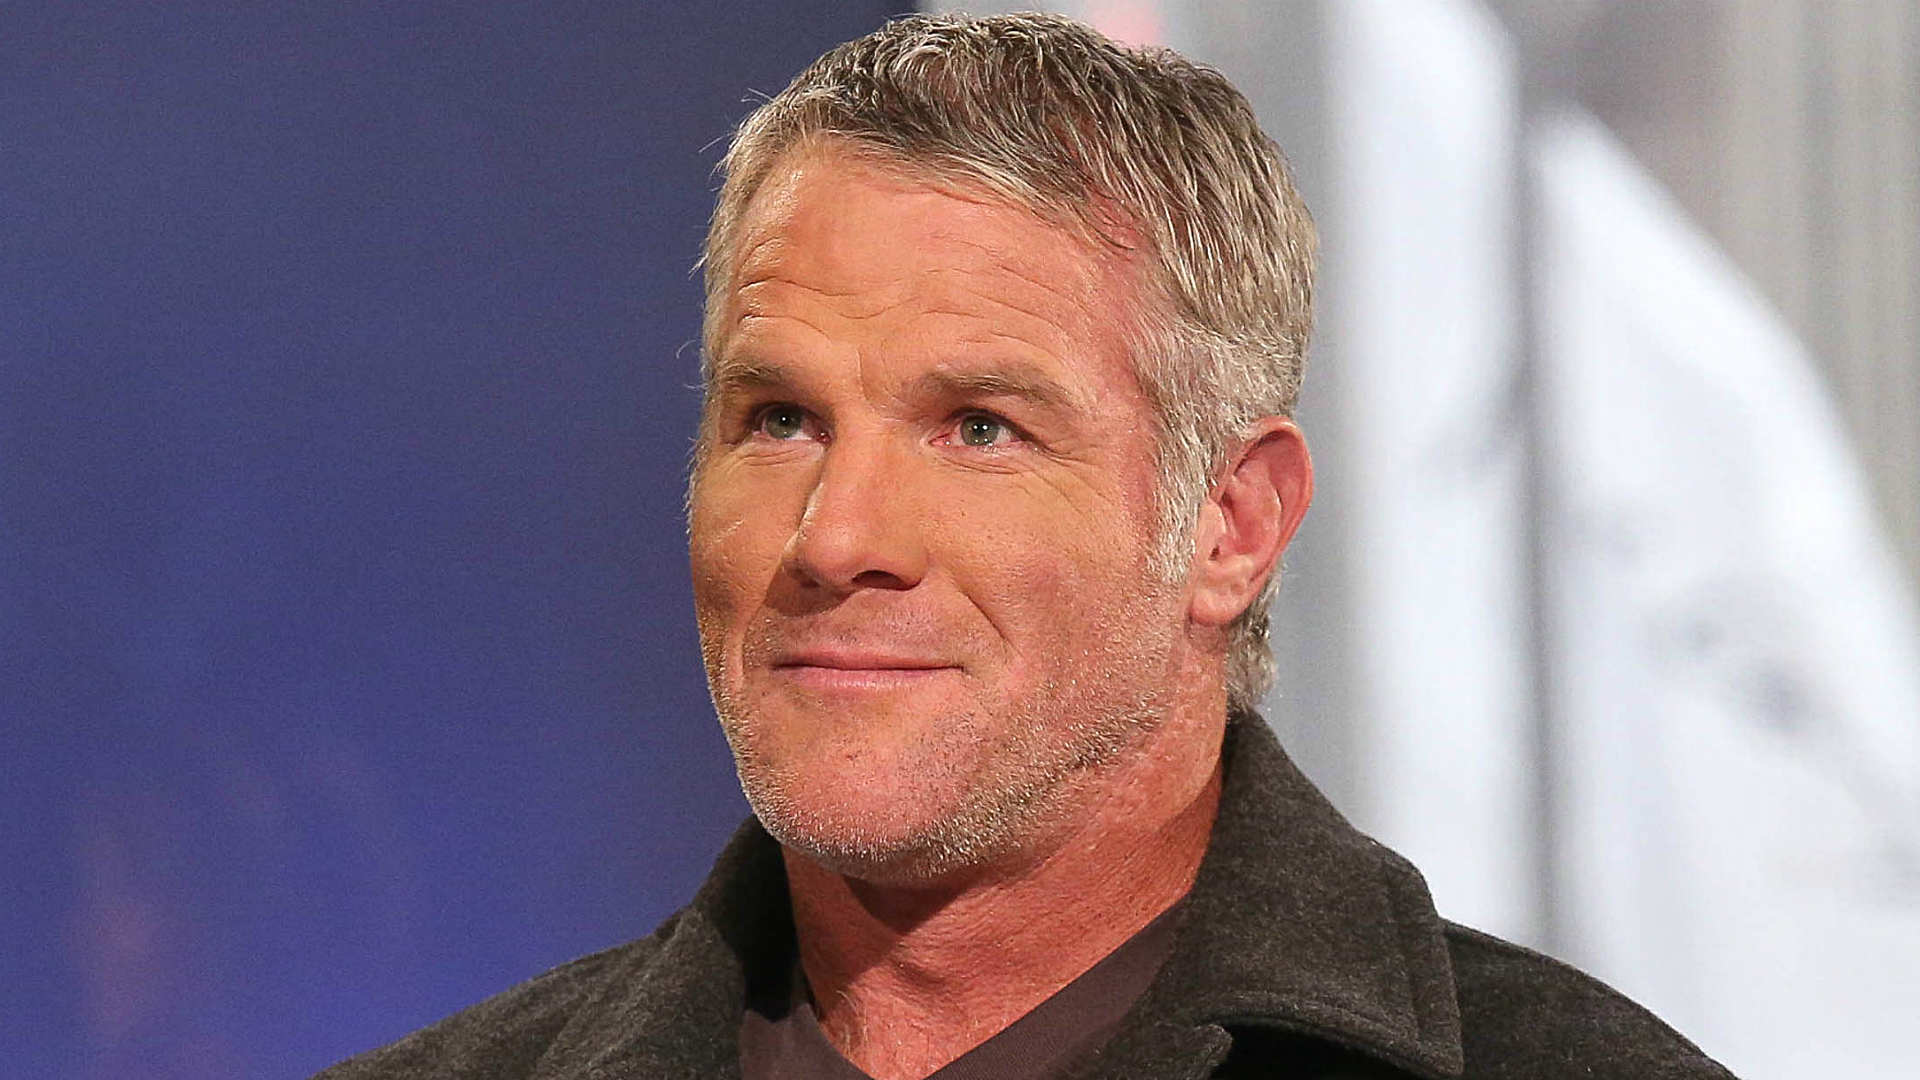 brett favre - photo #20